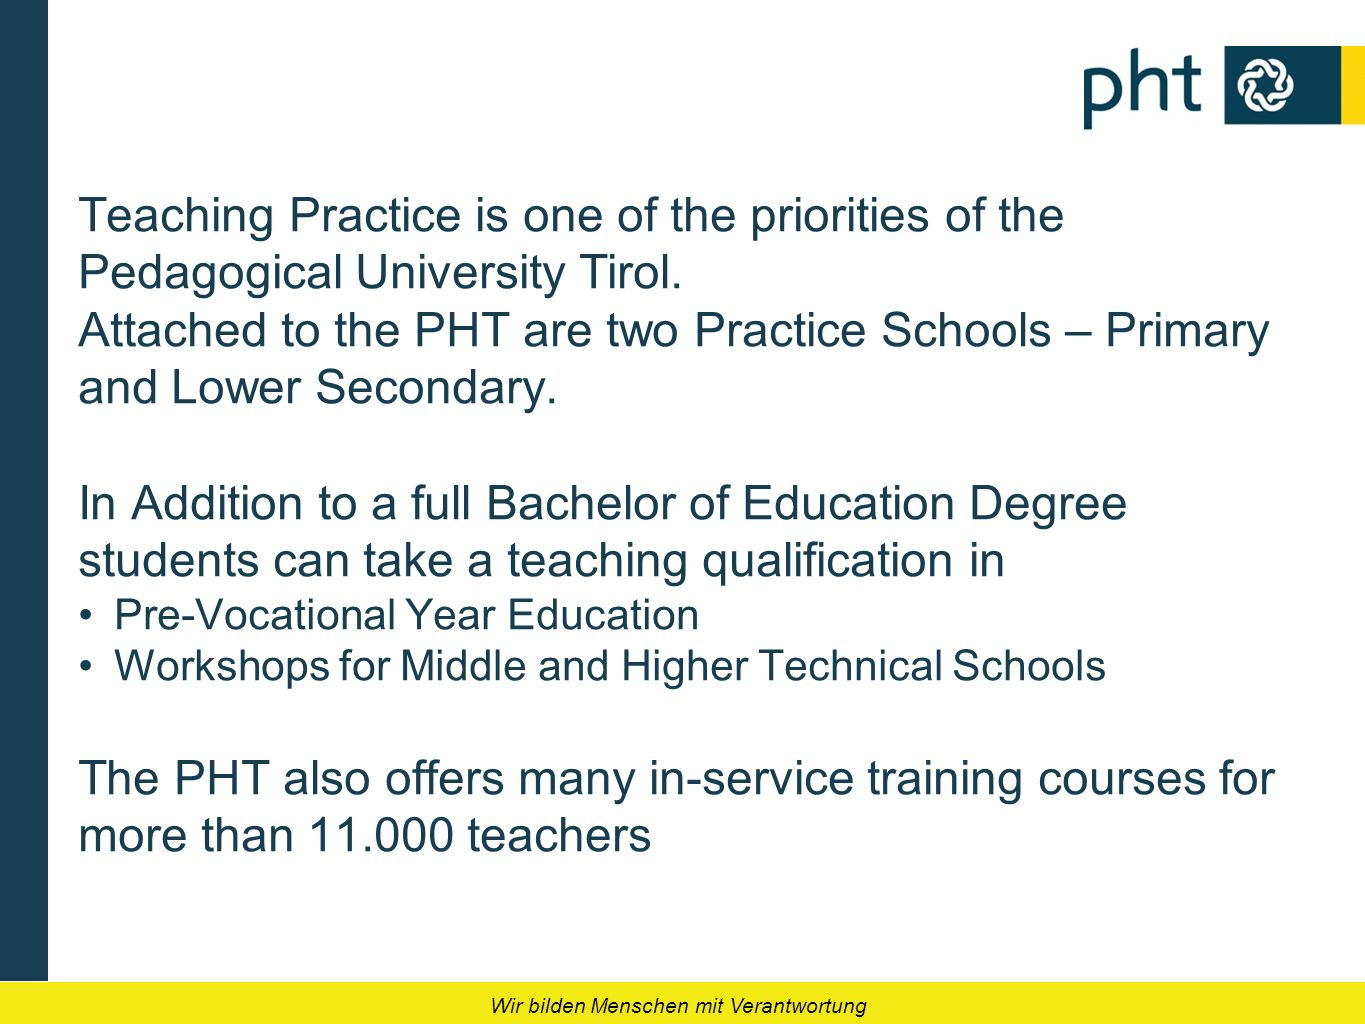 Teaching Practice is one of the priorities of the Pedagogical University Tirol. Attached to the PHT are two Practice Schools – Primary and Lower Secon